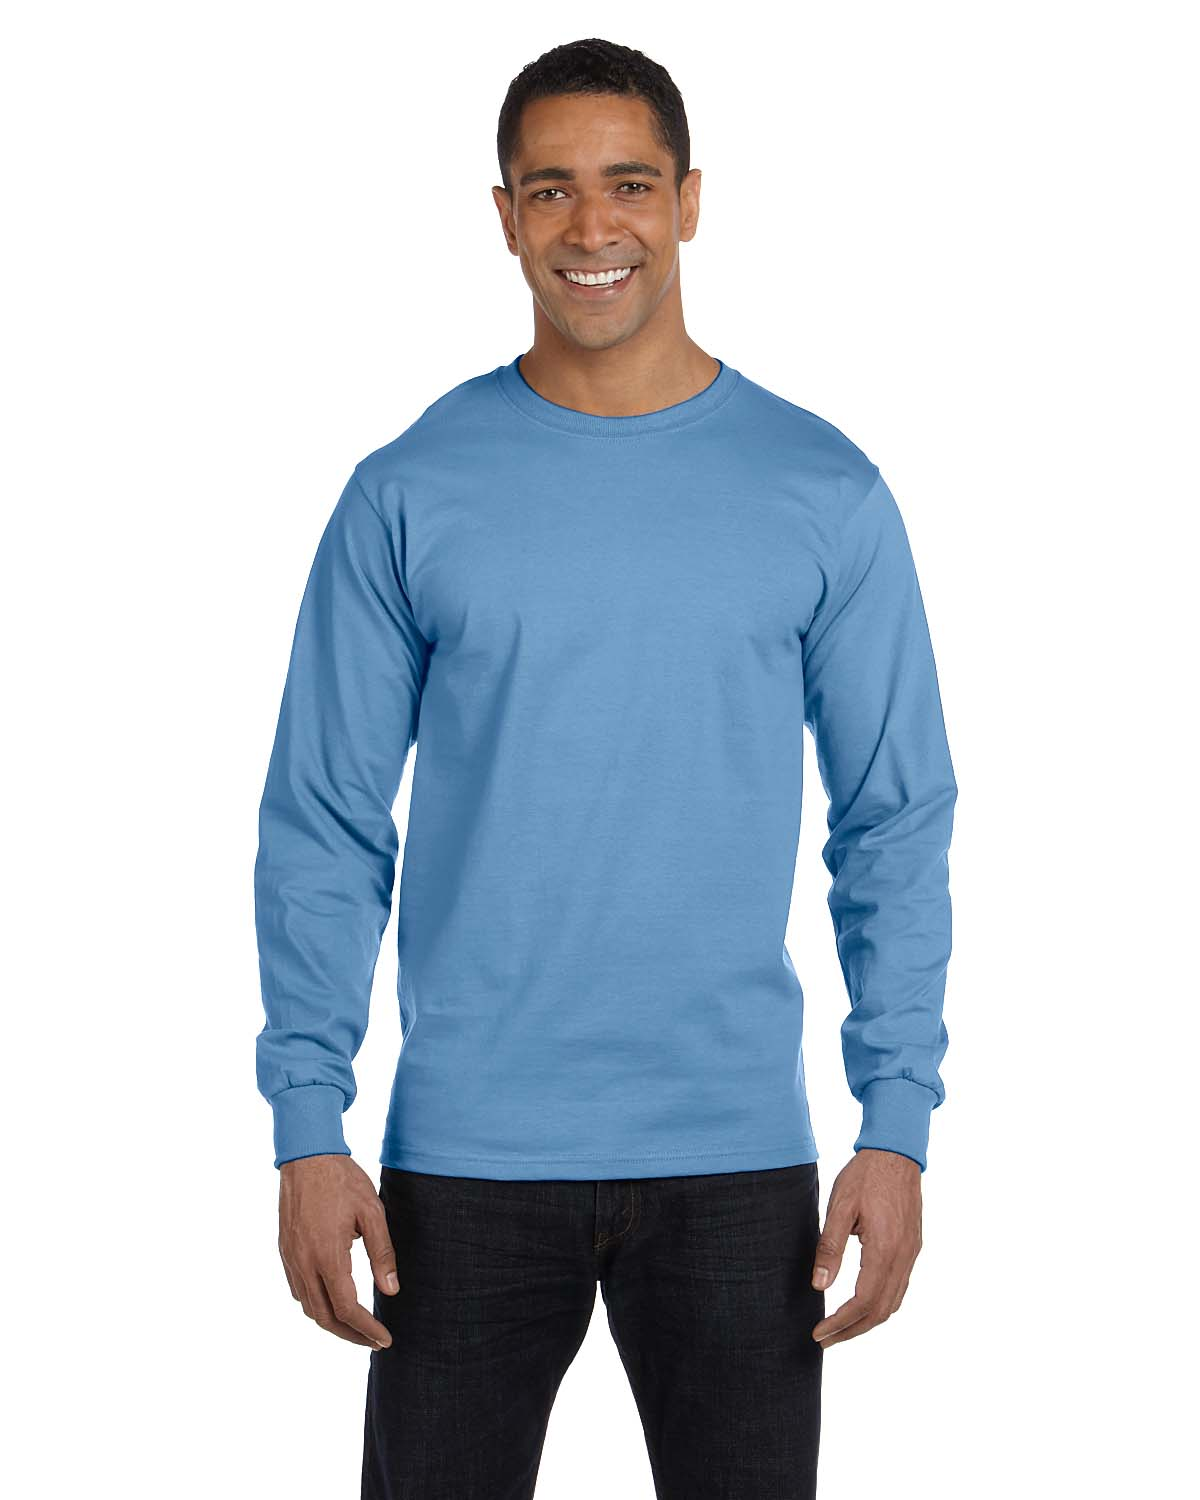 Gildan DryBlend® 5.6 Oz., 50/50 Long-Sleeve T-Shirt